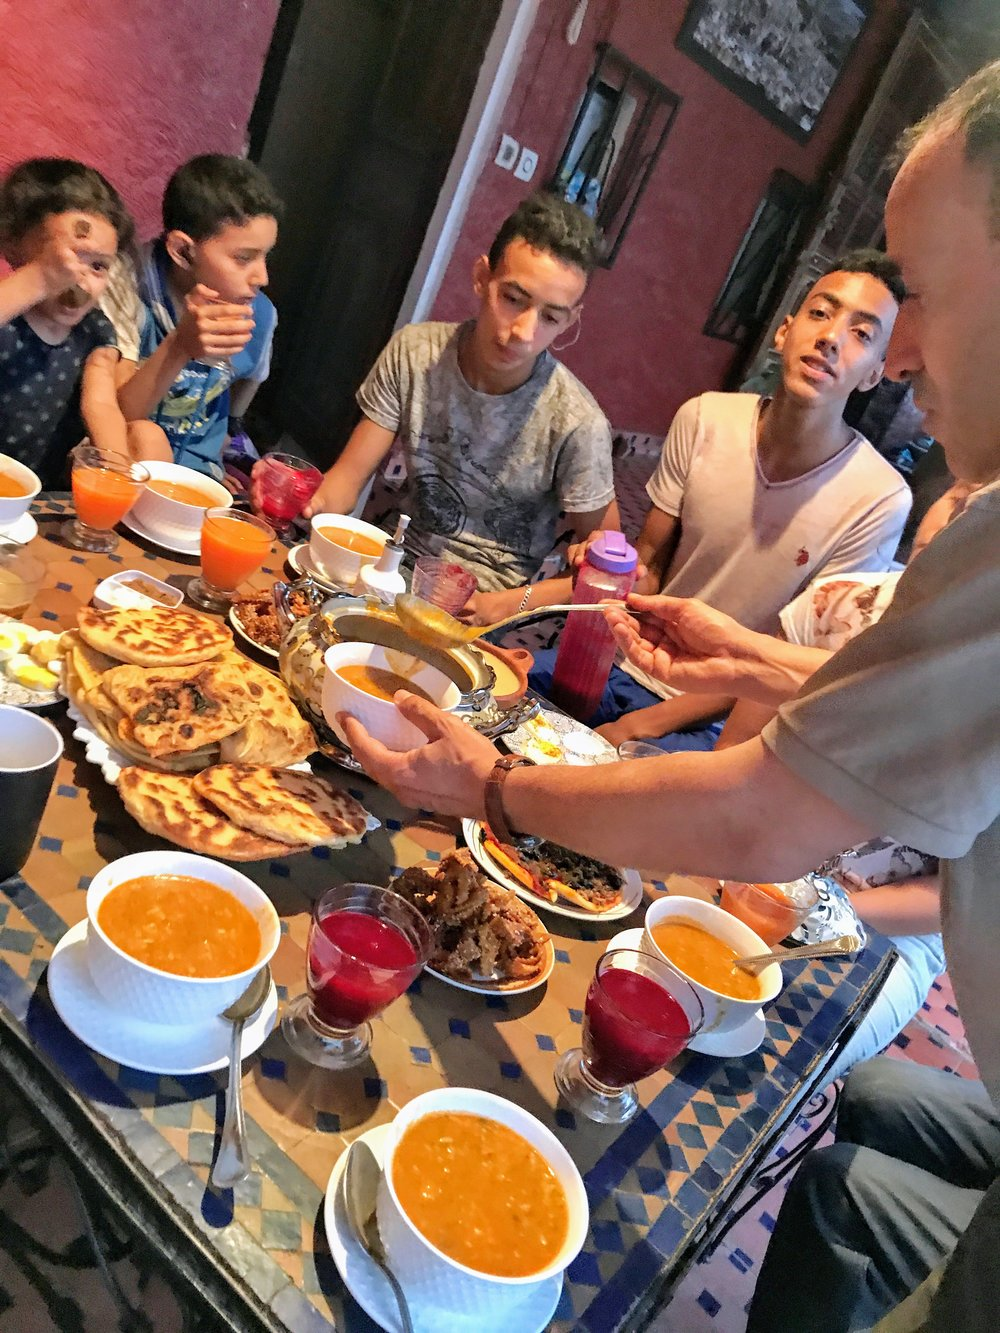 We're not Muslim, but we were invited by our host in Fez, Morocco, to join his family in breaking fast for Ramadan.